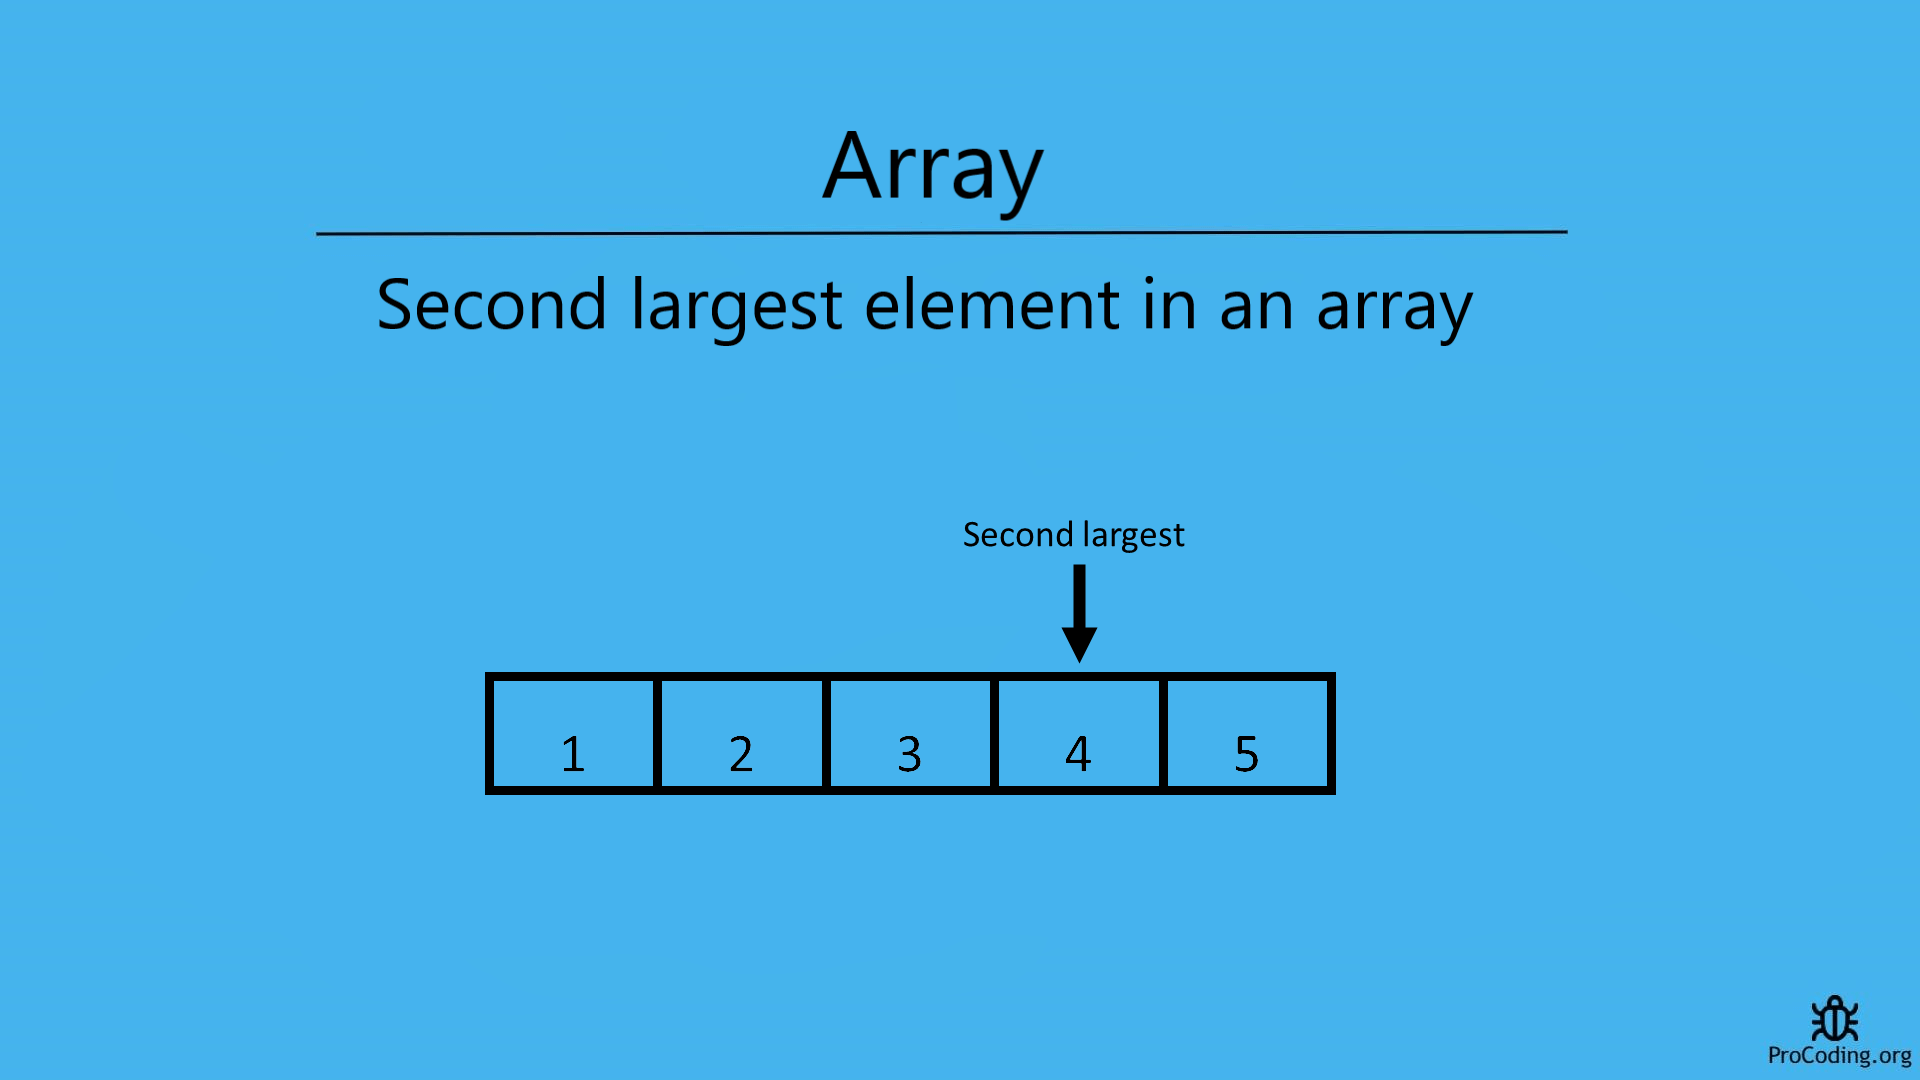 Second largest element in an array